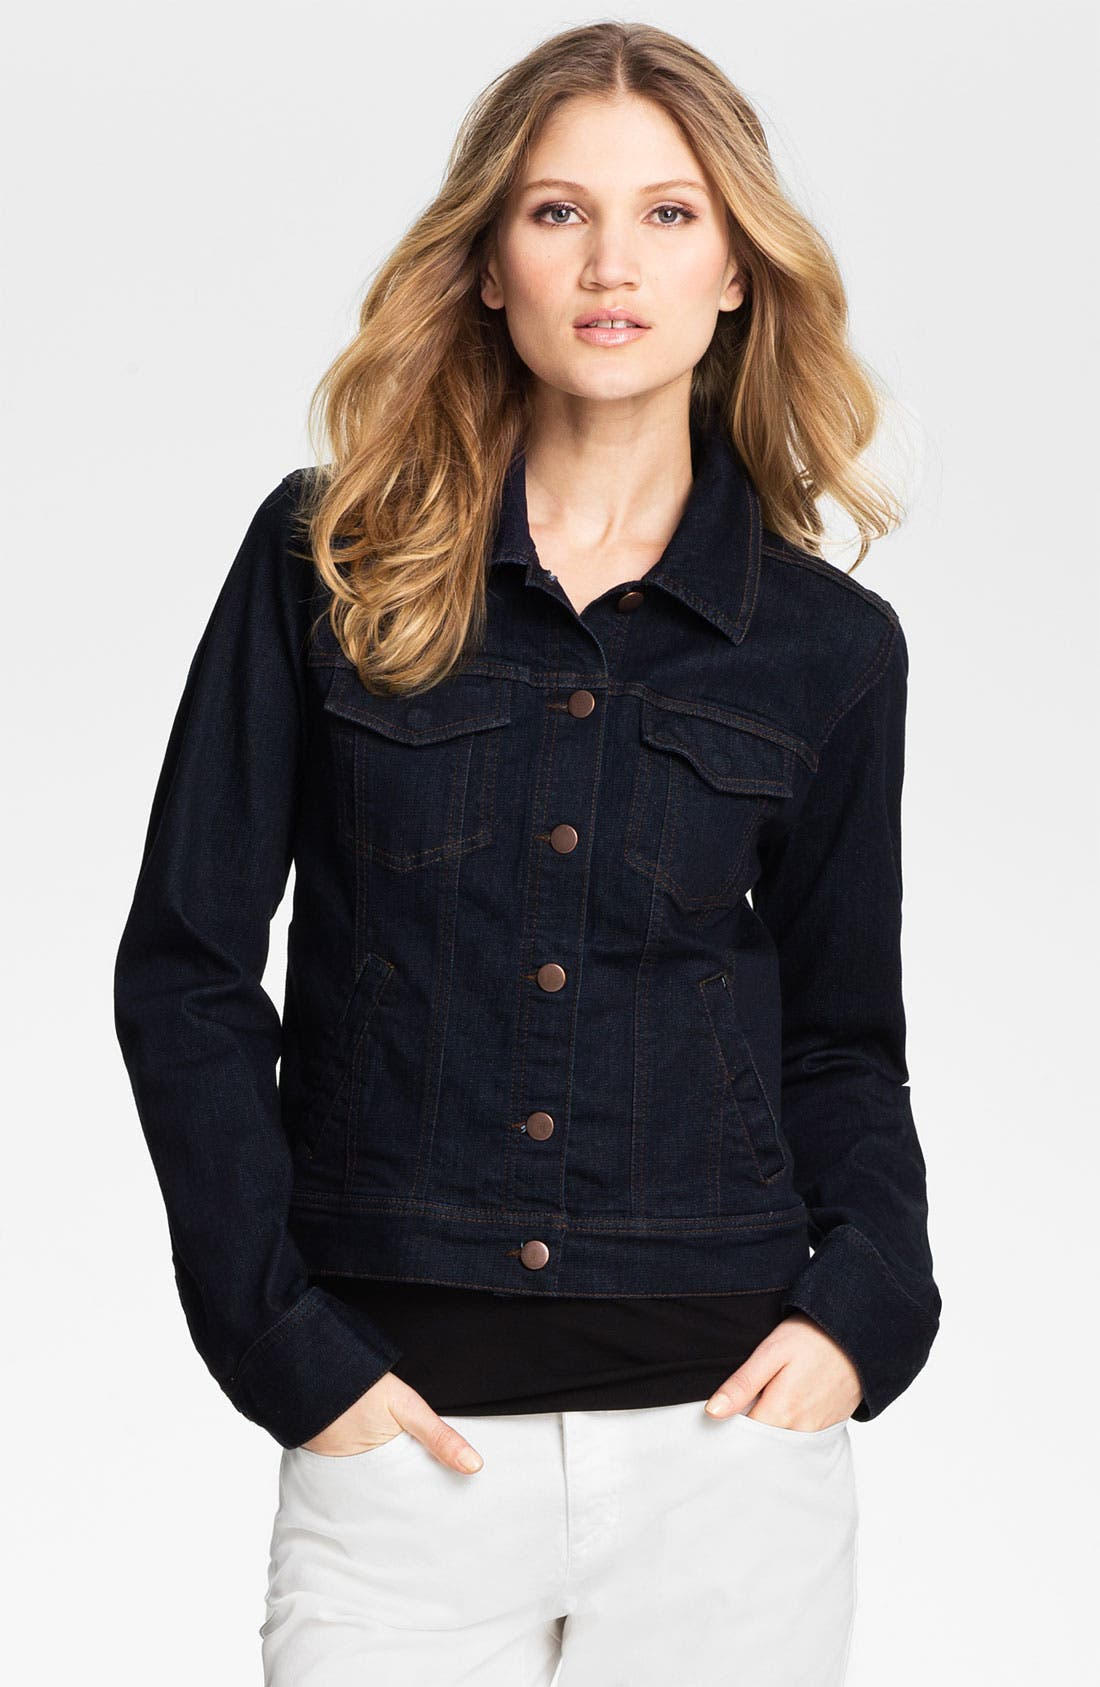 Organic Cotton Blend Denim Jacket,                         Main,                         color, Indigo